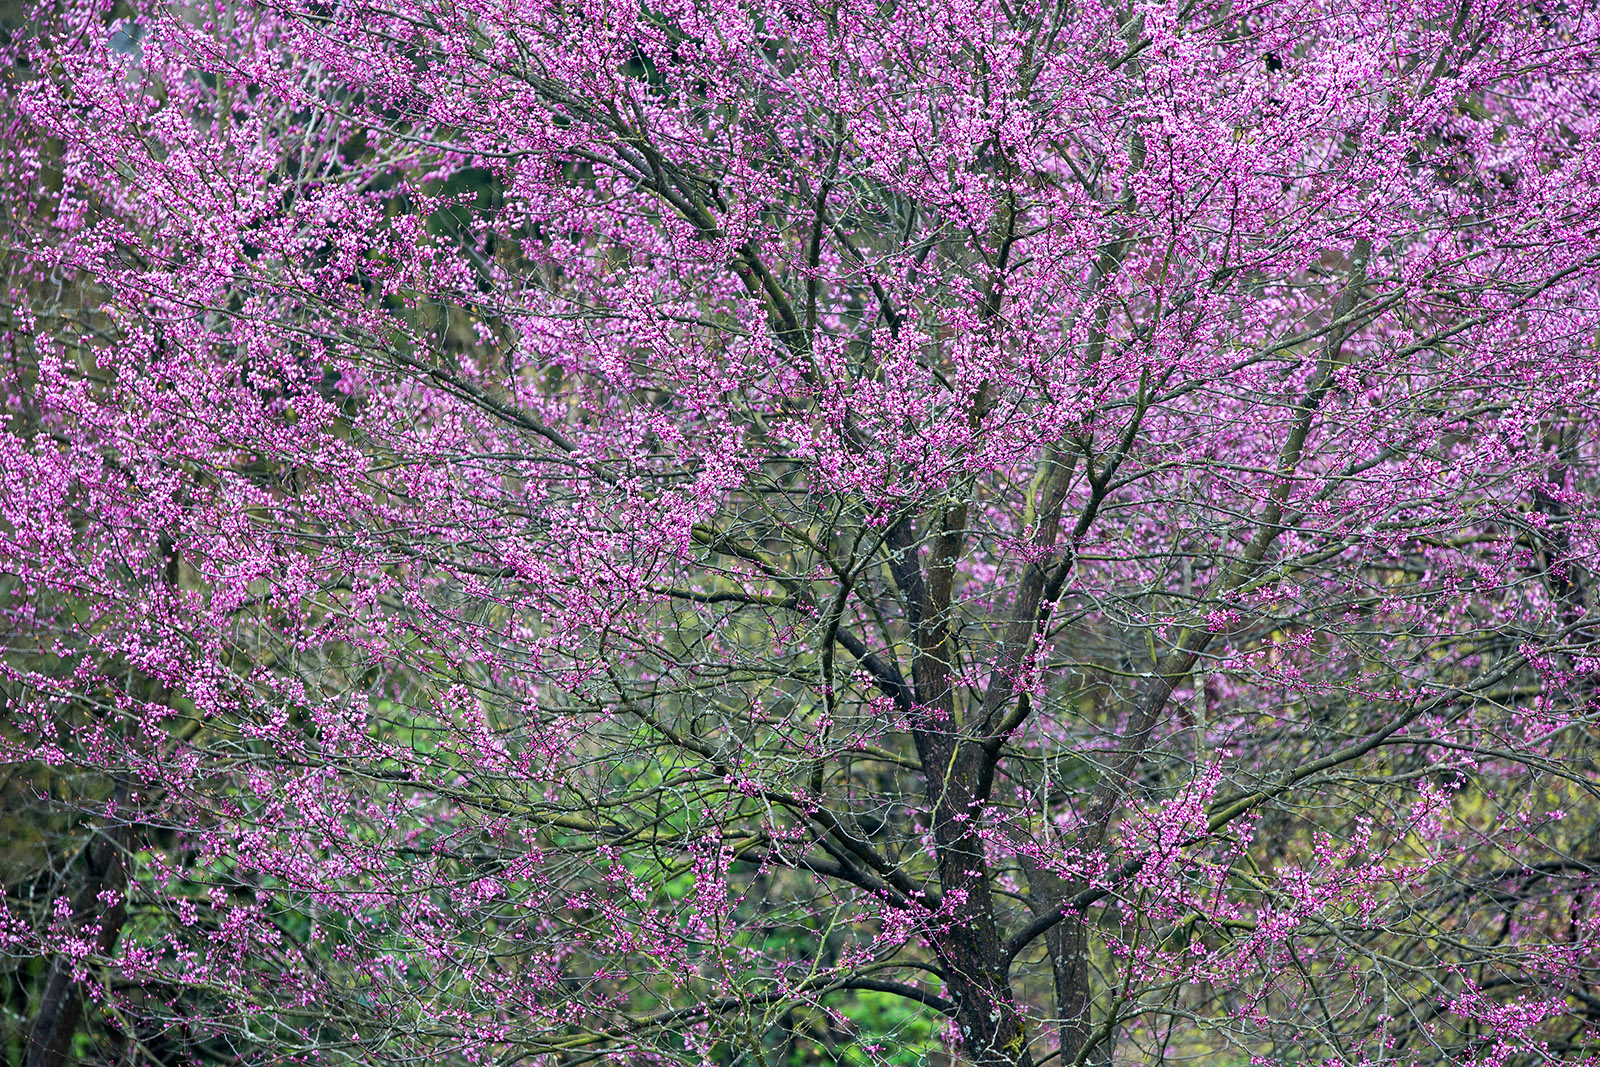 Floral display of Cercis canadensis